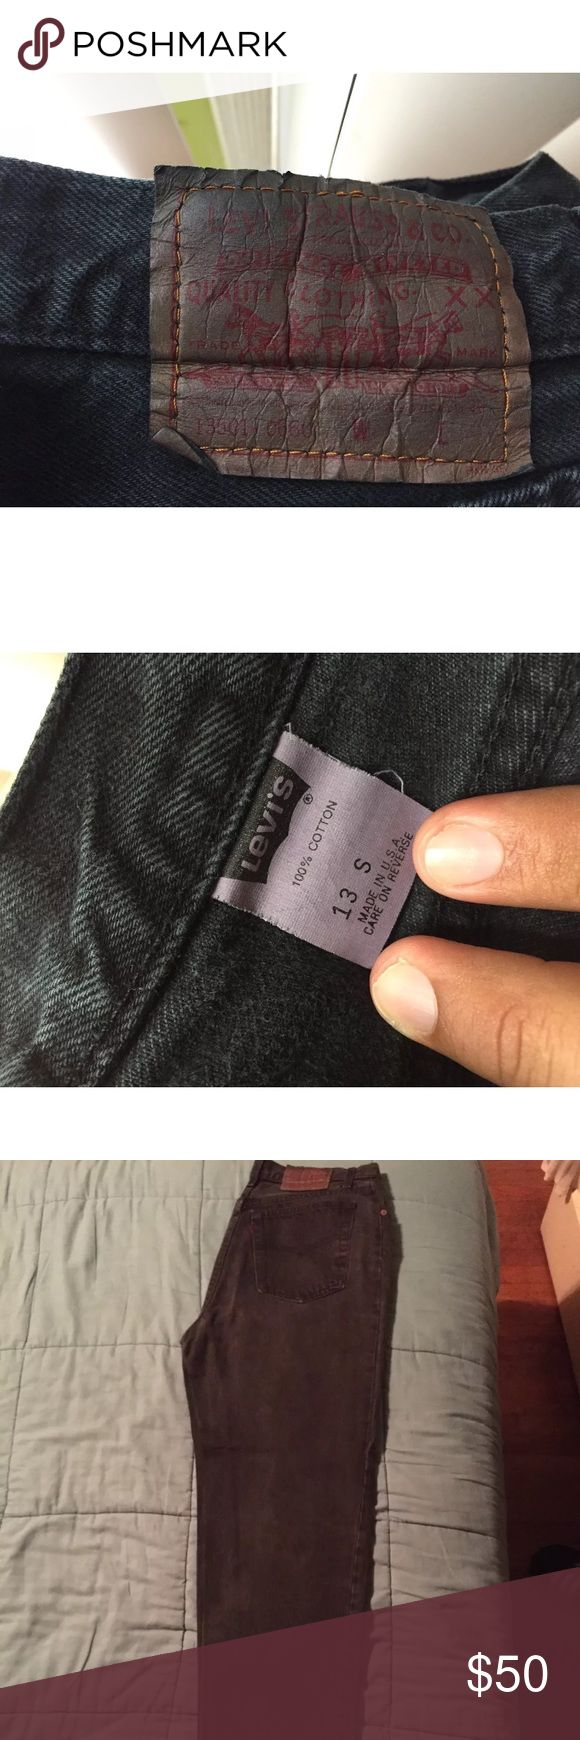 Vintage Women's 501 Levi's Jeans made in the usa These pair of Levis are straight from the 90's. Belonged to a great person who loved them very much. These pair are made in the USA. Vintage jeans indeed. There's a blue pair on my profile if it hasnt already sold. Levi's Jeans Straight Leg